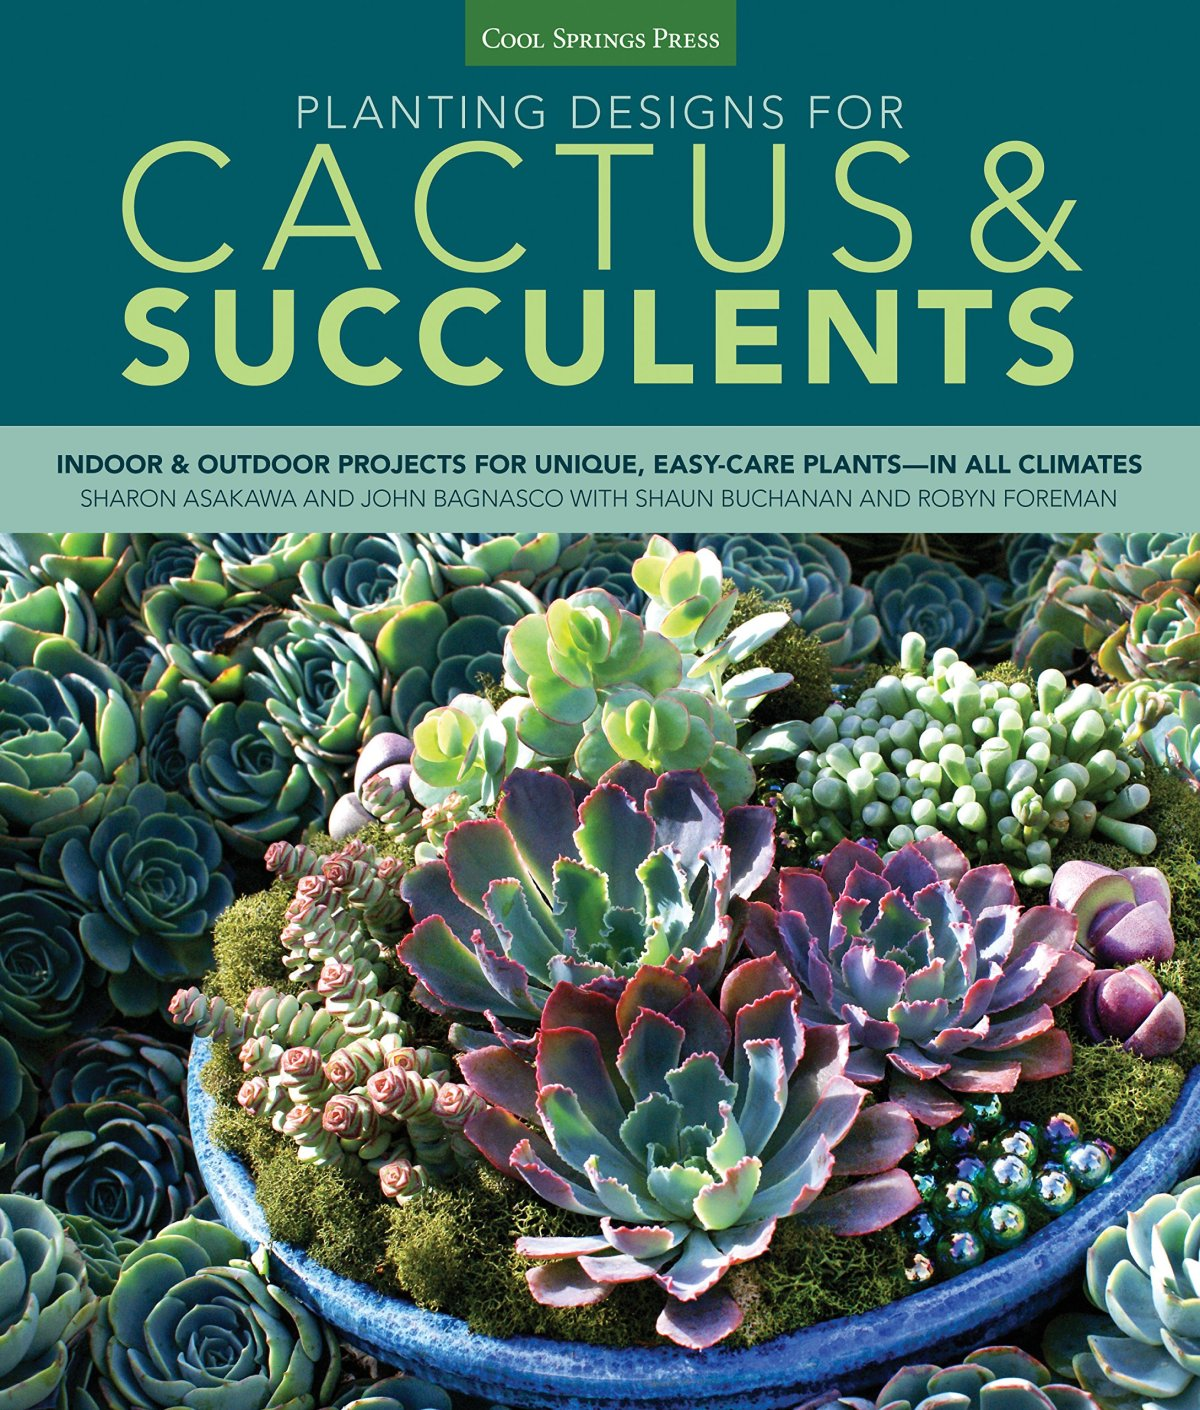 Planting Designs for Cactus and Succulents